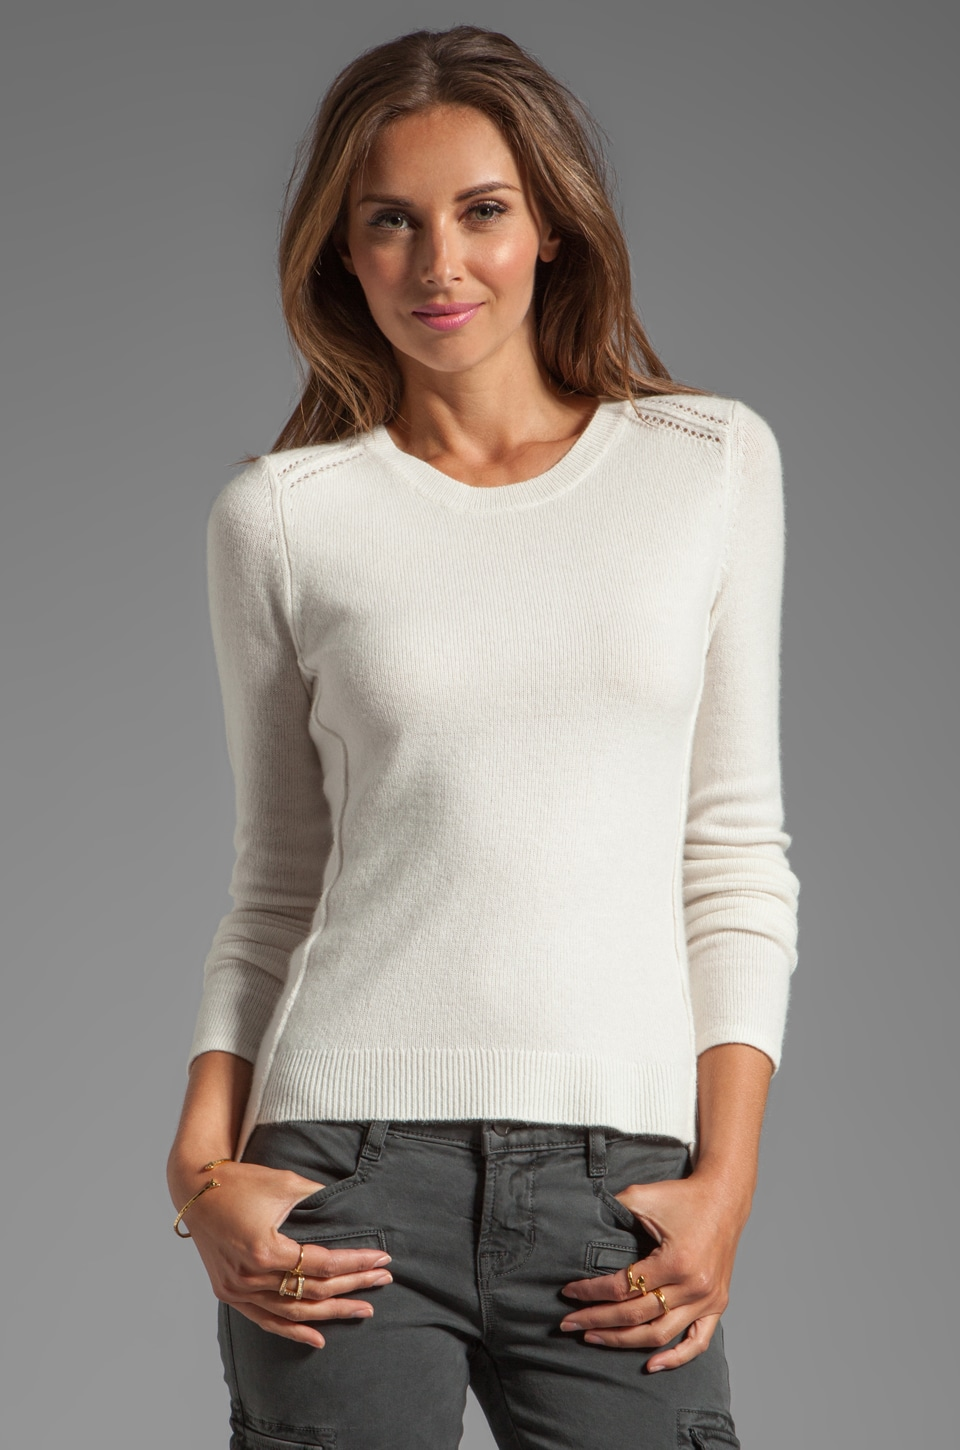 Inhabit Cashmere Crewneck Sweater in Ivory